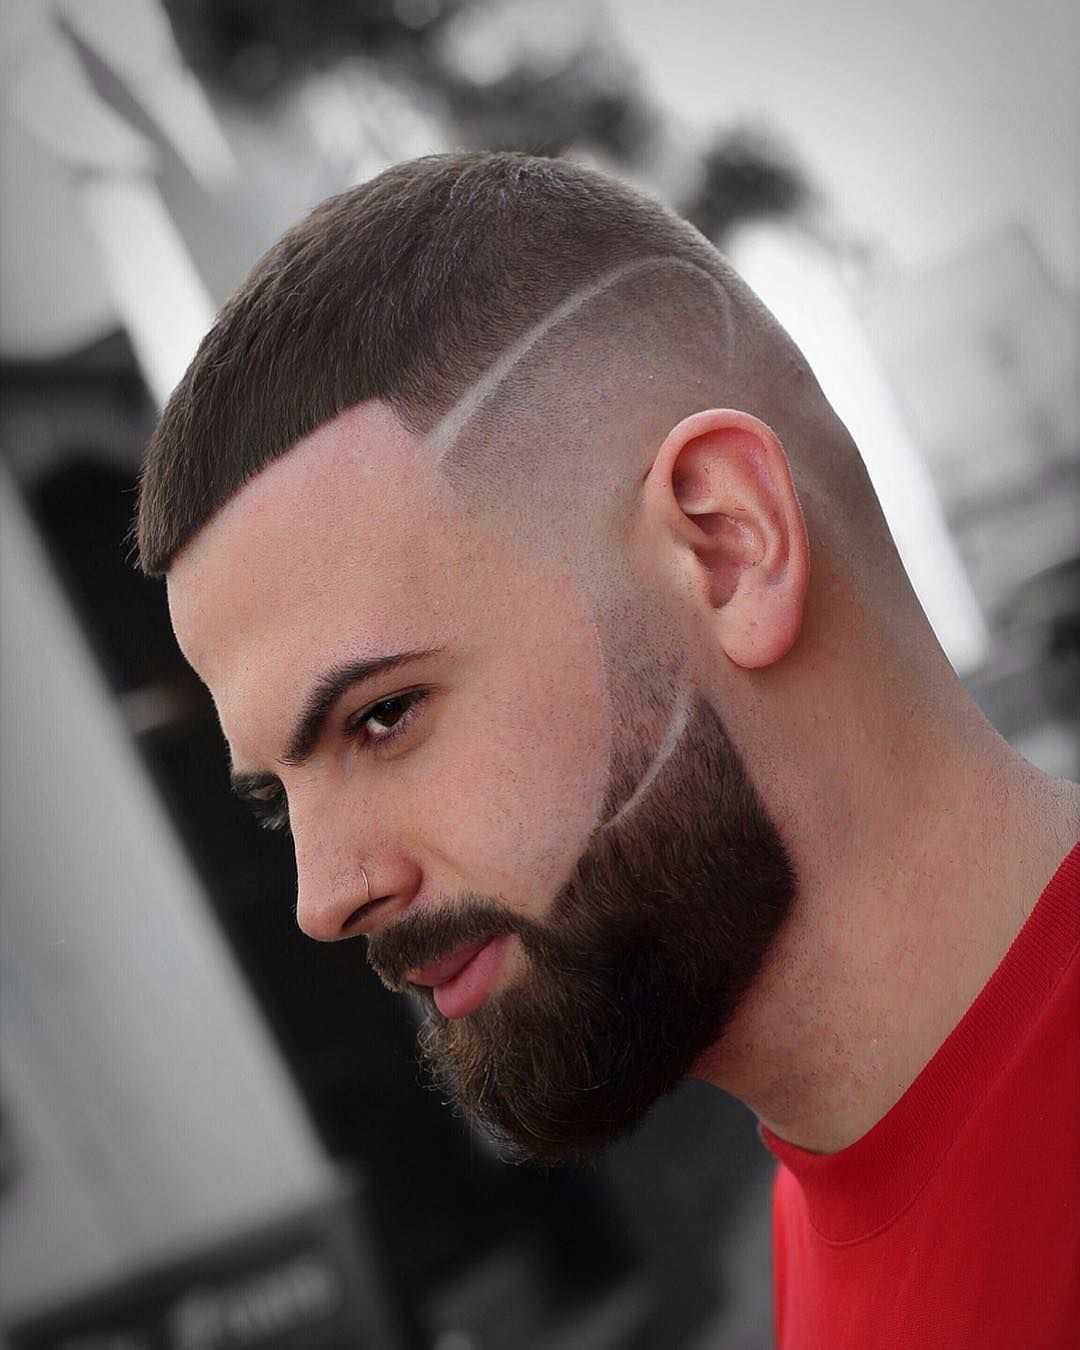 Mens Short Hairstyles 2019 Coiffure Homme Coiffure Homme Court Coiffures Masculines